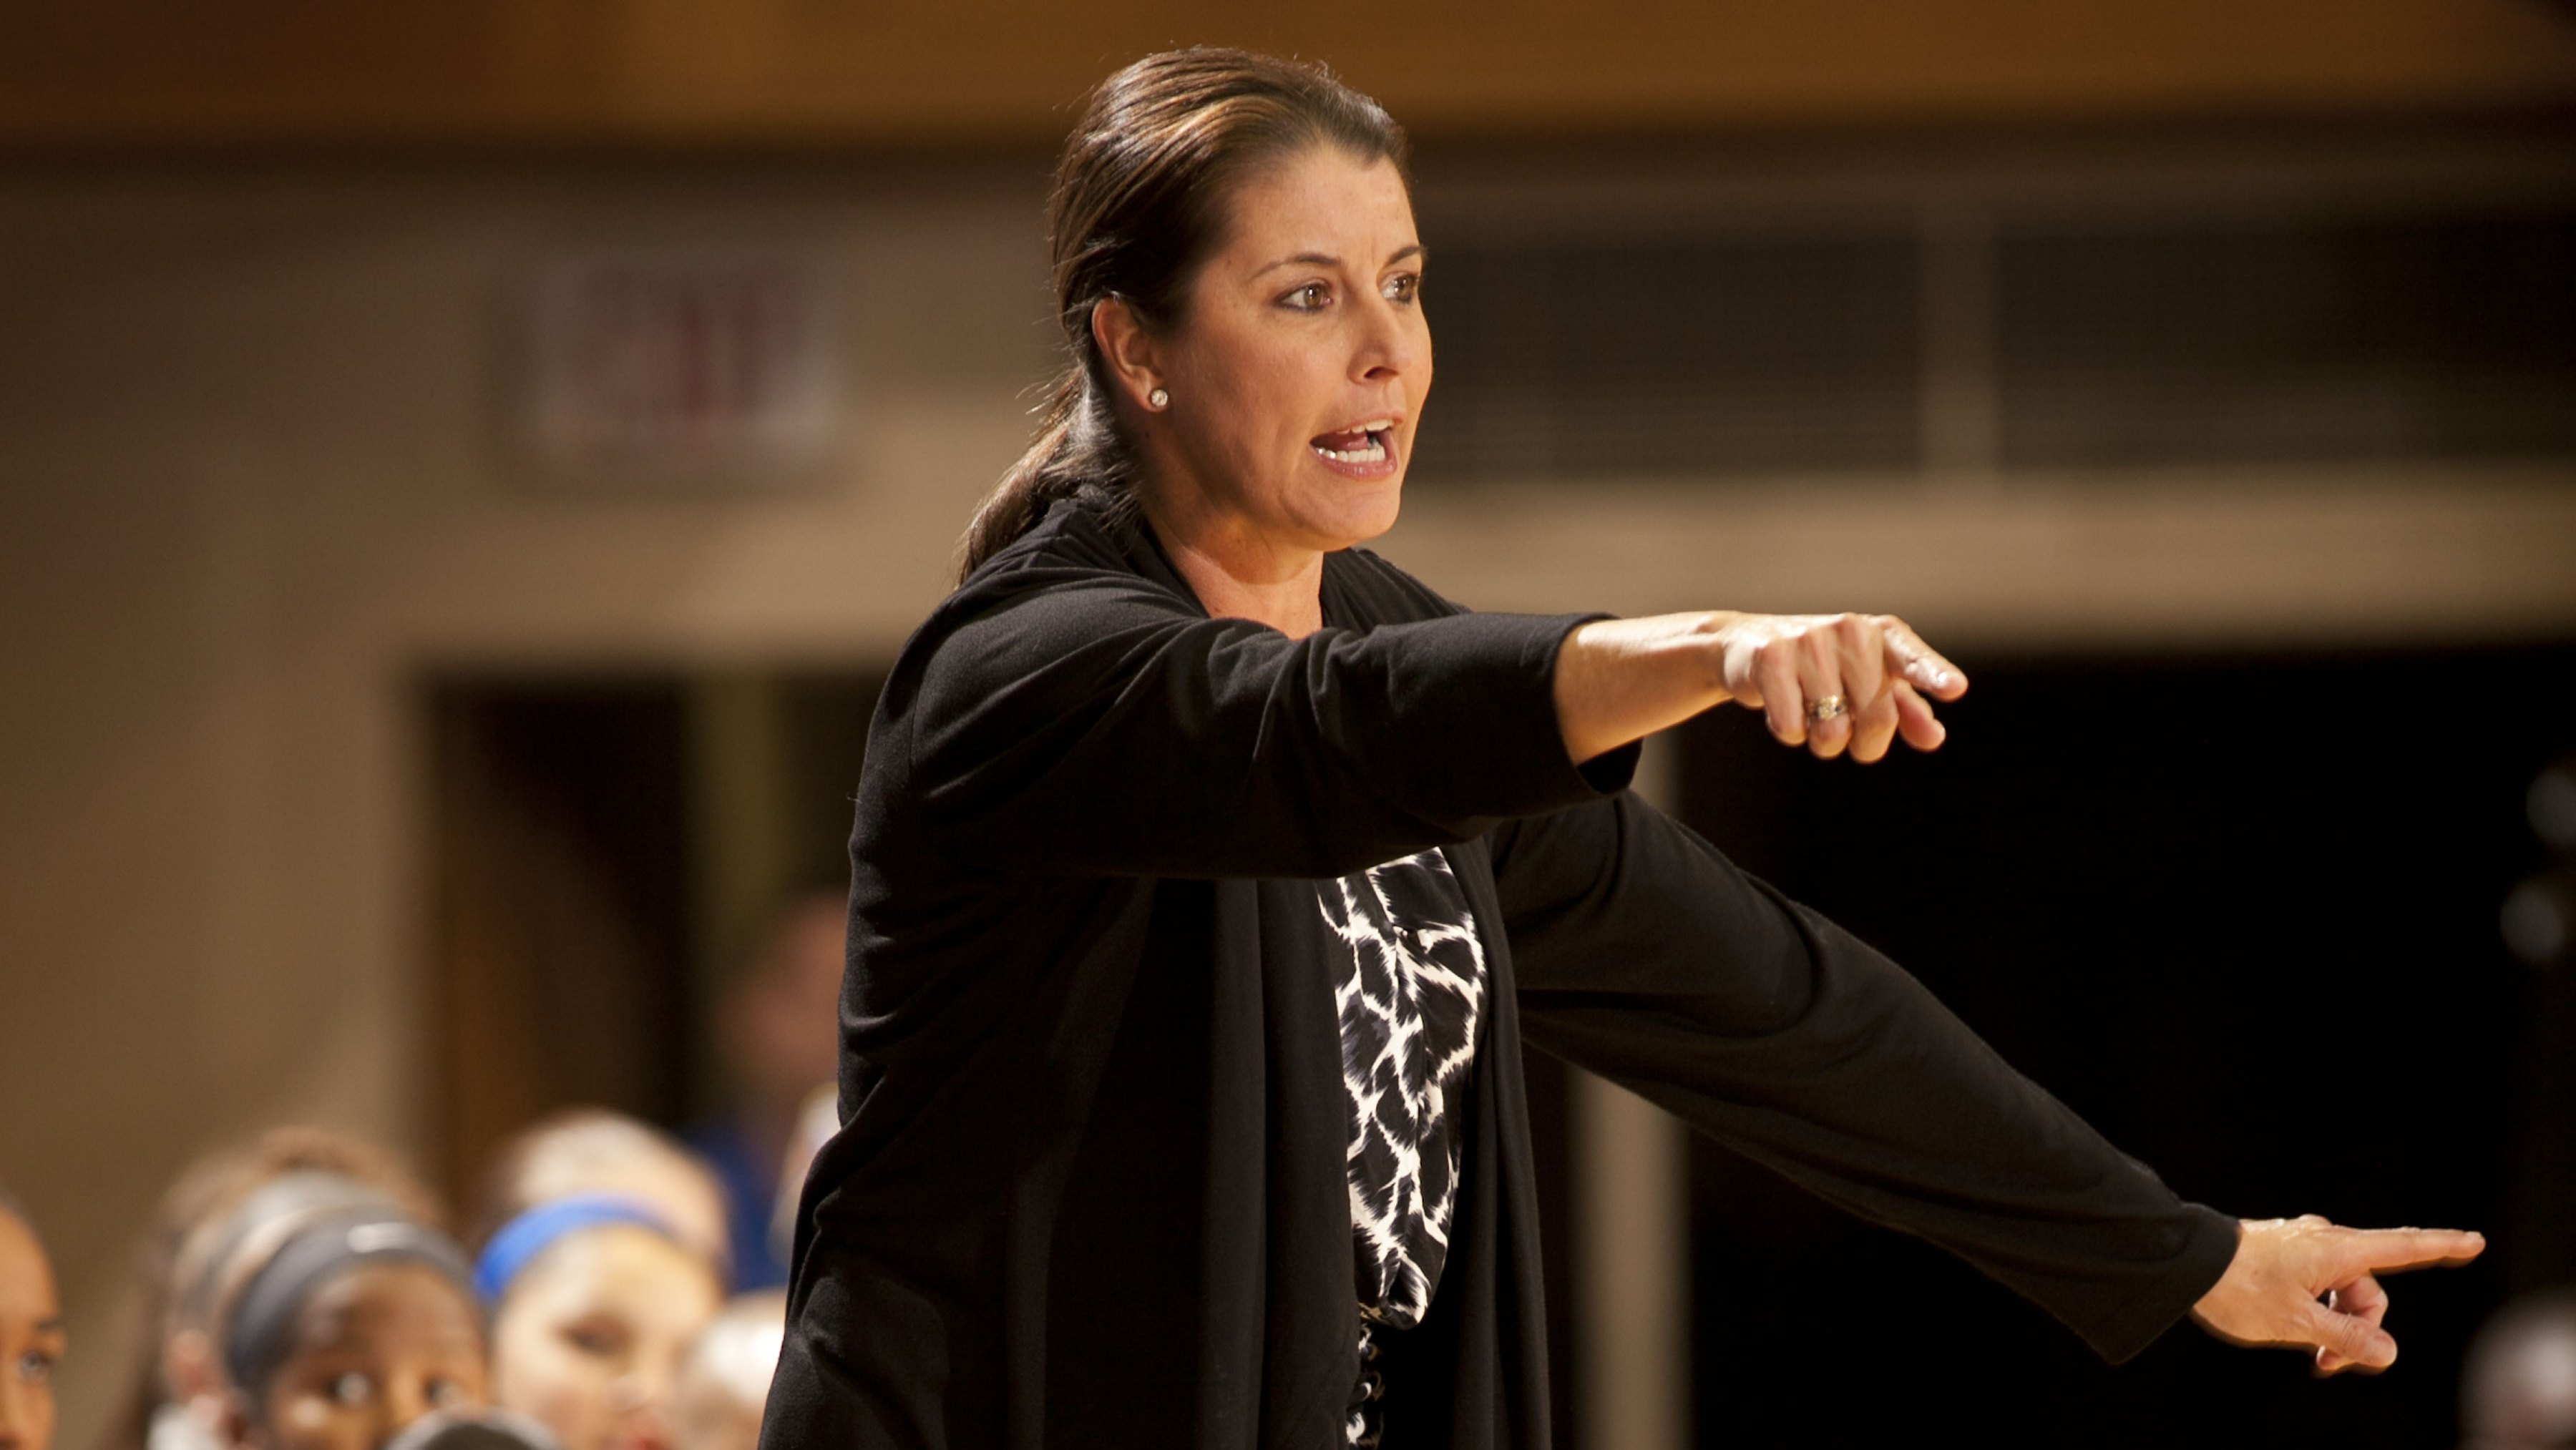 Dishin & Swishin 12/12/13 Podcast: Is #2 Duke ready for #1 UConn? Coach Joanne P. McCallie talks about the Blue Devils and Mechelle Voepel discusses a program seeking a signature win